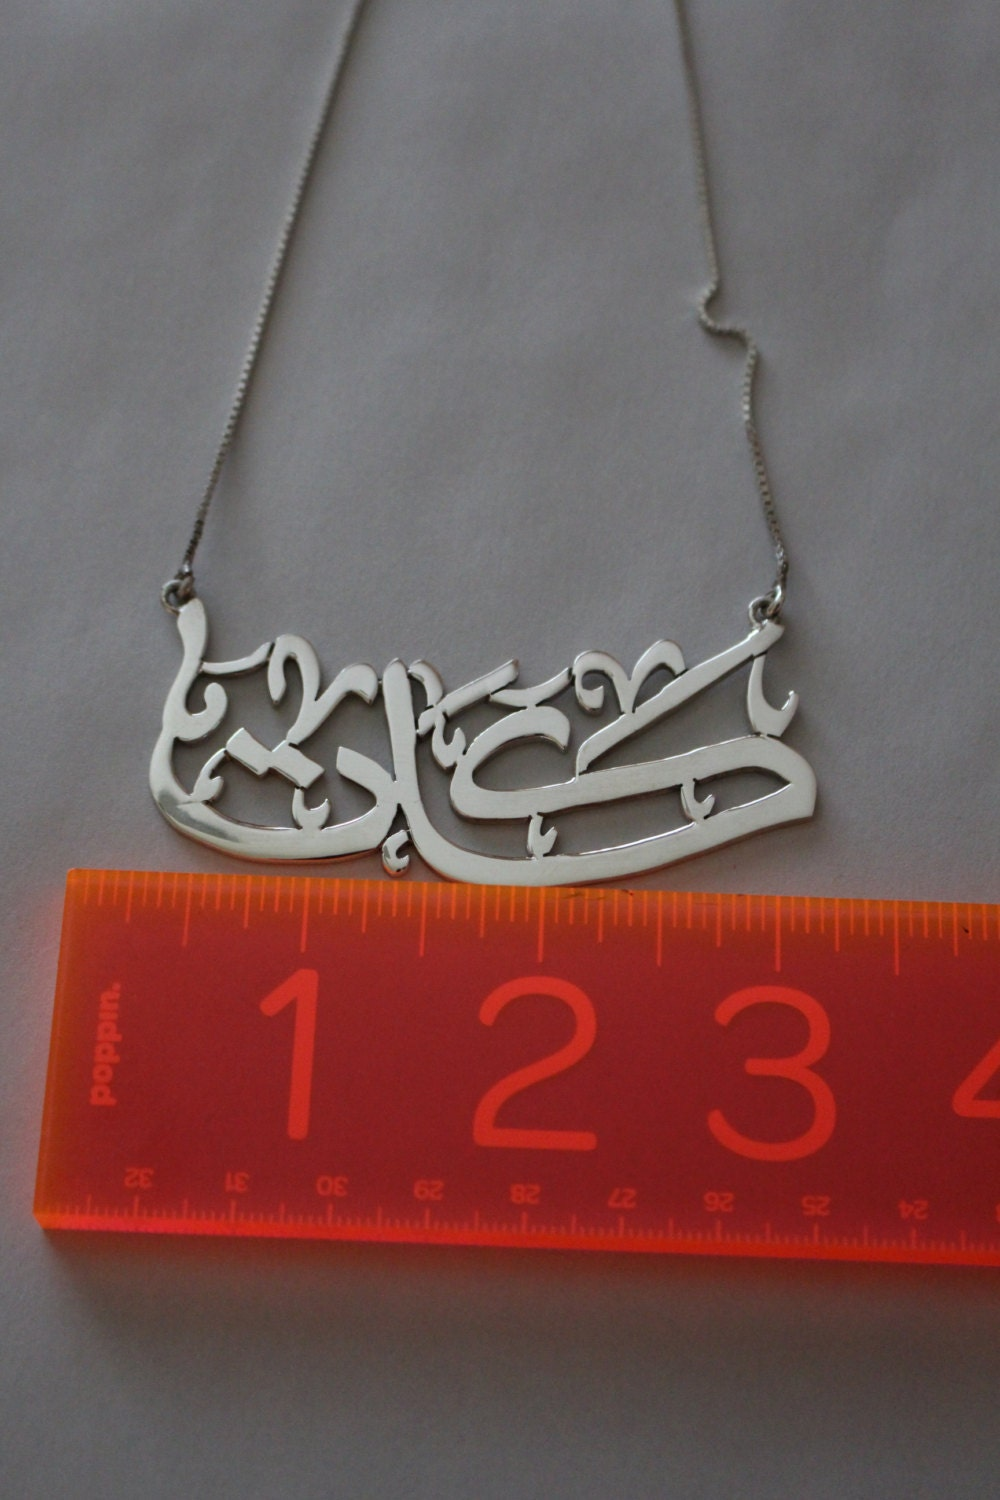 jewelry pronunciation large size arabic punctuated name necklace proper 2636